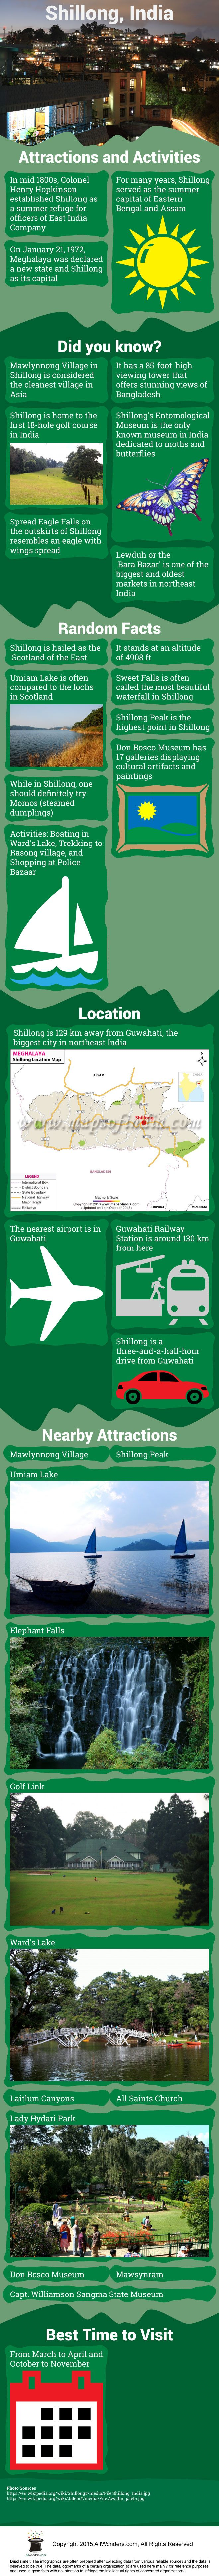 Shillong Travel Infographic